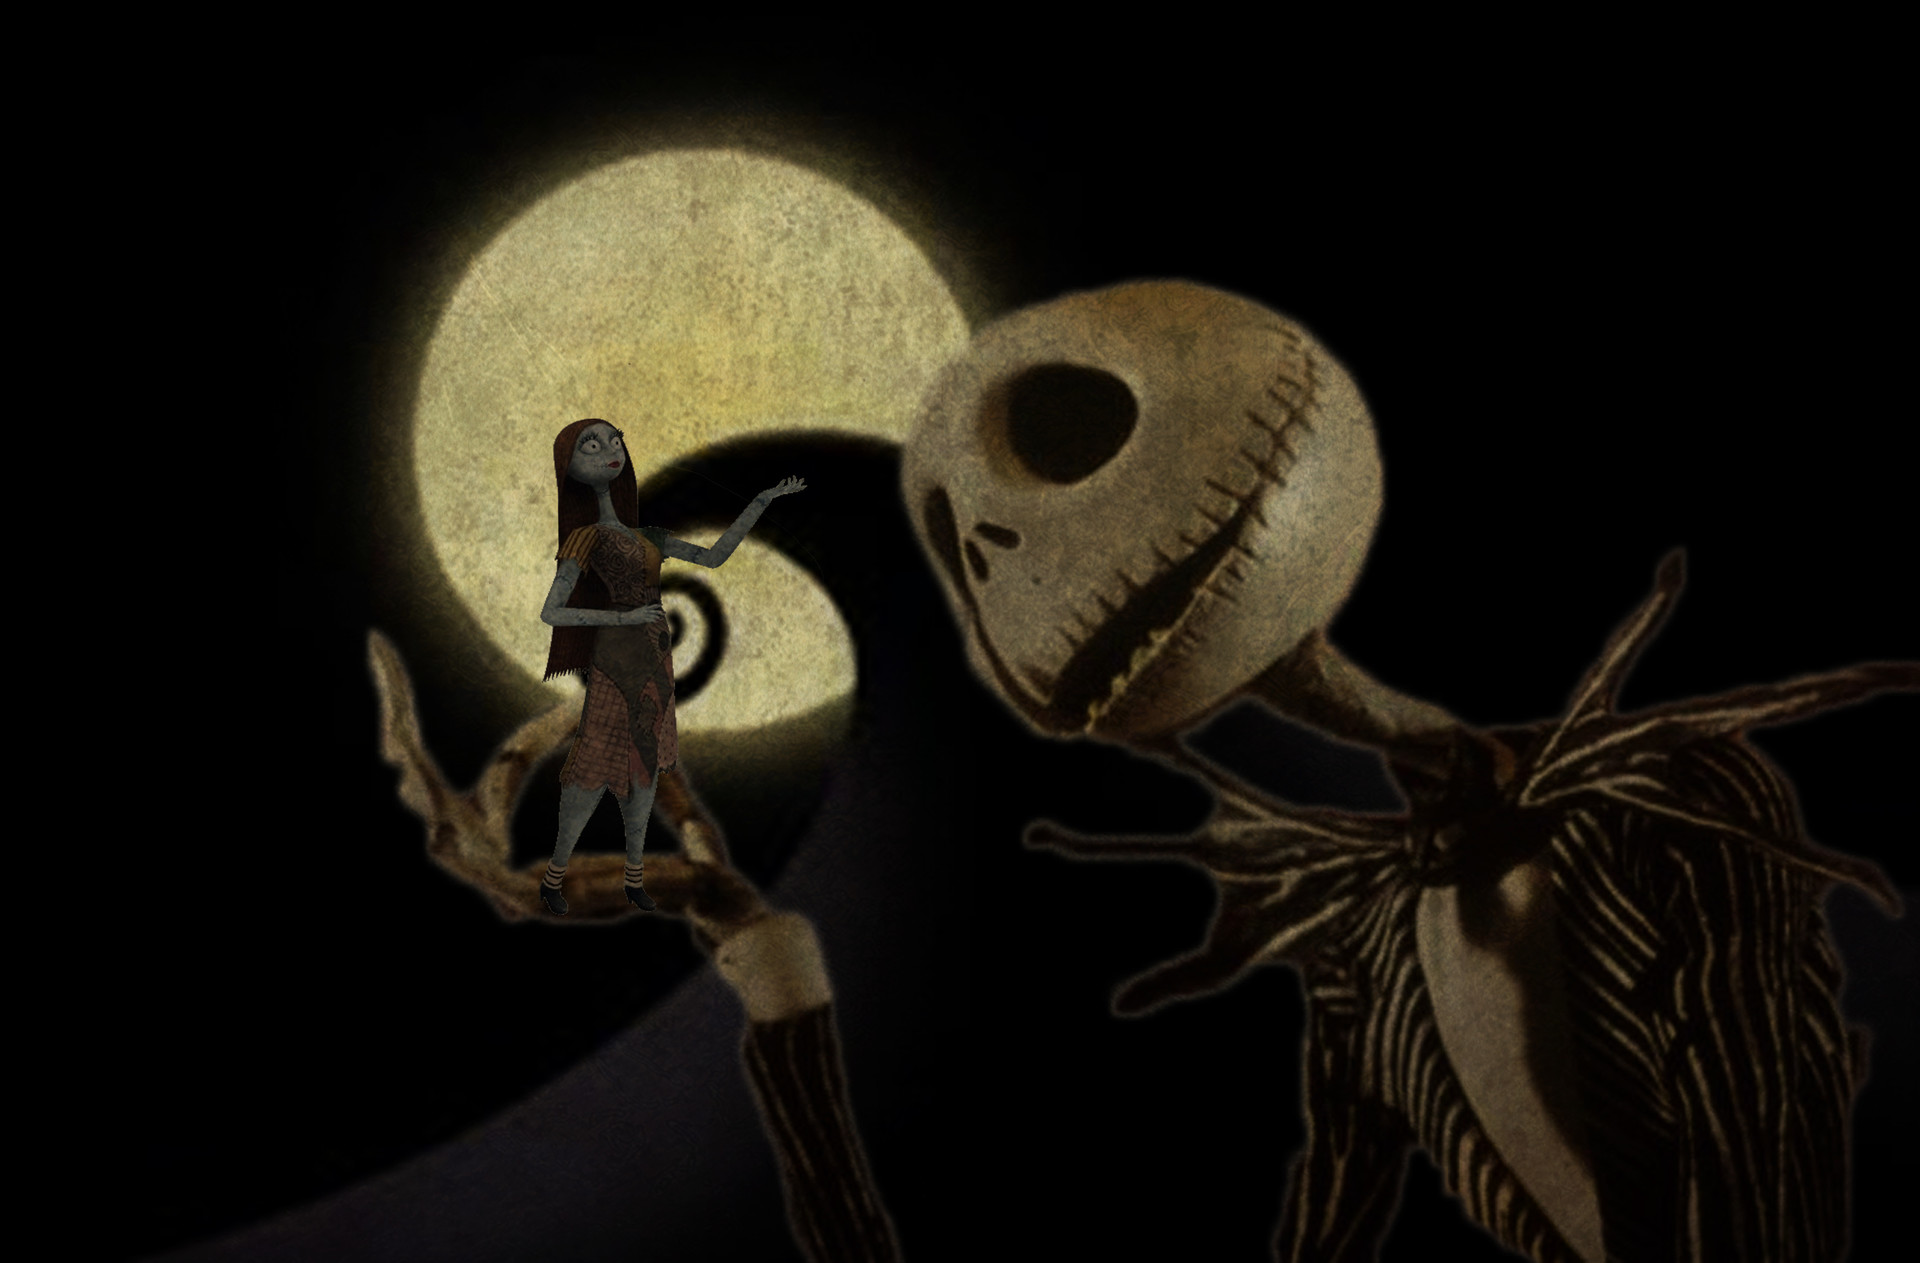 Artstation The Nightmare Before Christmas Jack And Sally Mr Ka Artwork The nightmare before christmas is a tim burton film in the sense that the story, its world and its look first took shape in burton's mind, and he supervised their filming. the nightmare before christmas jack and